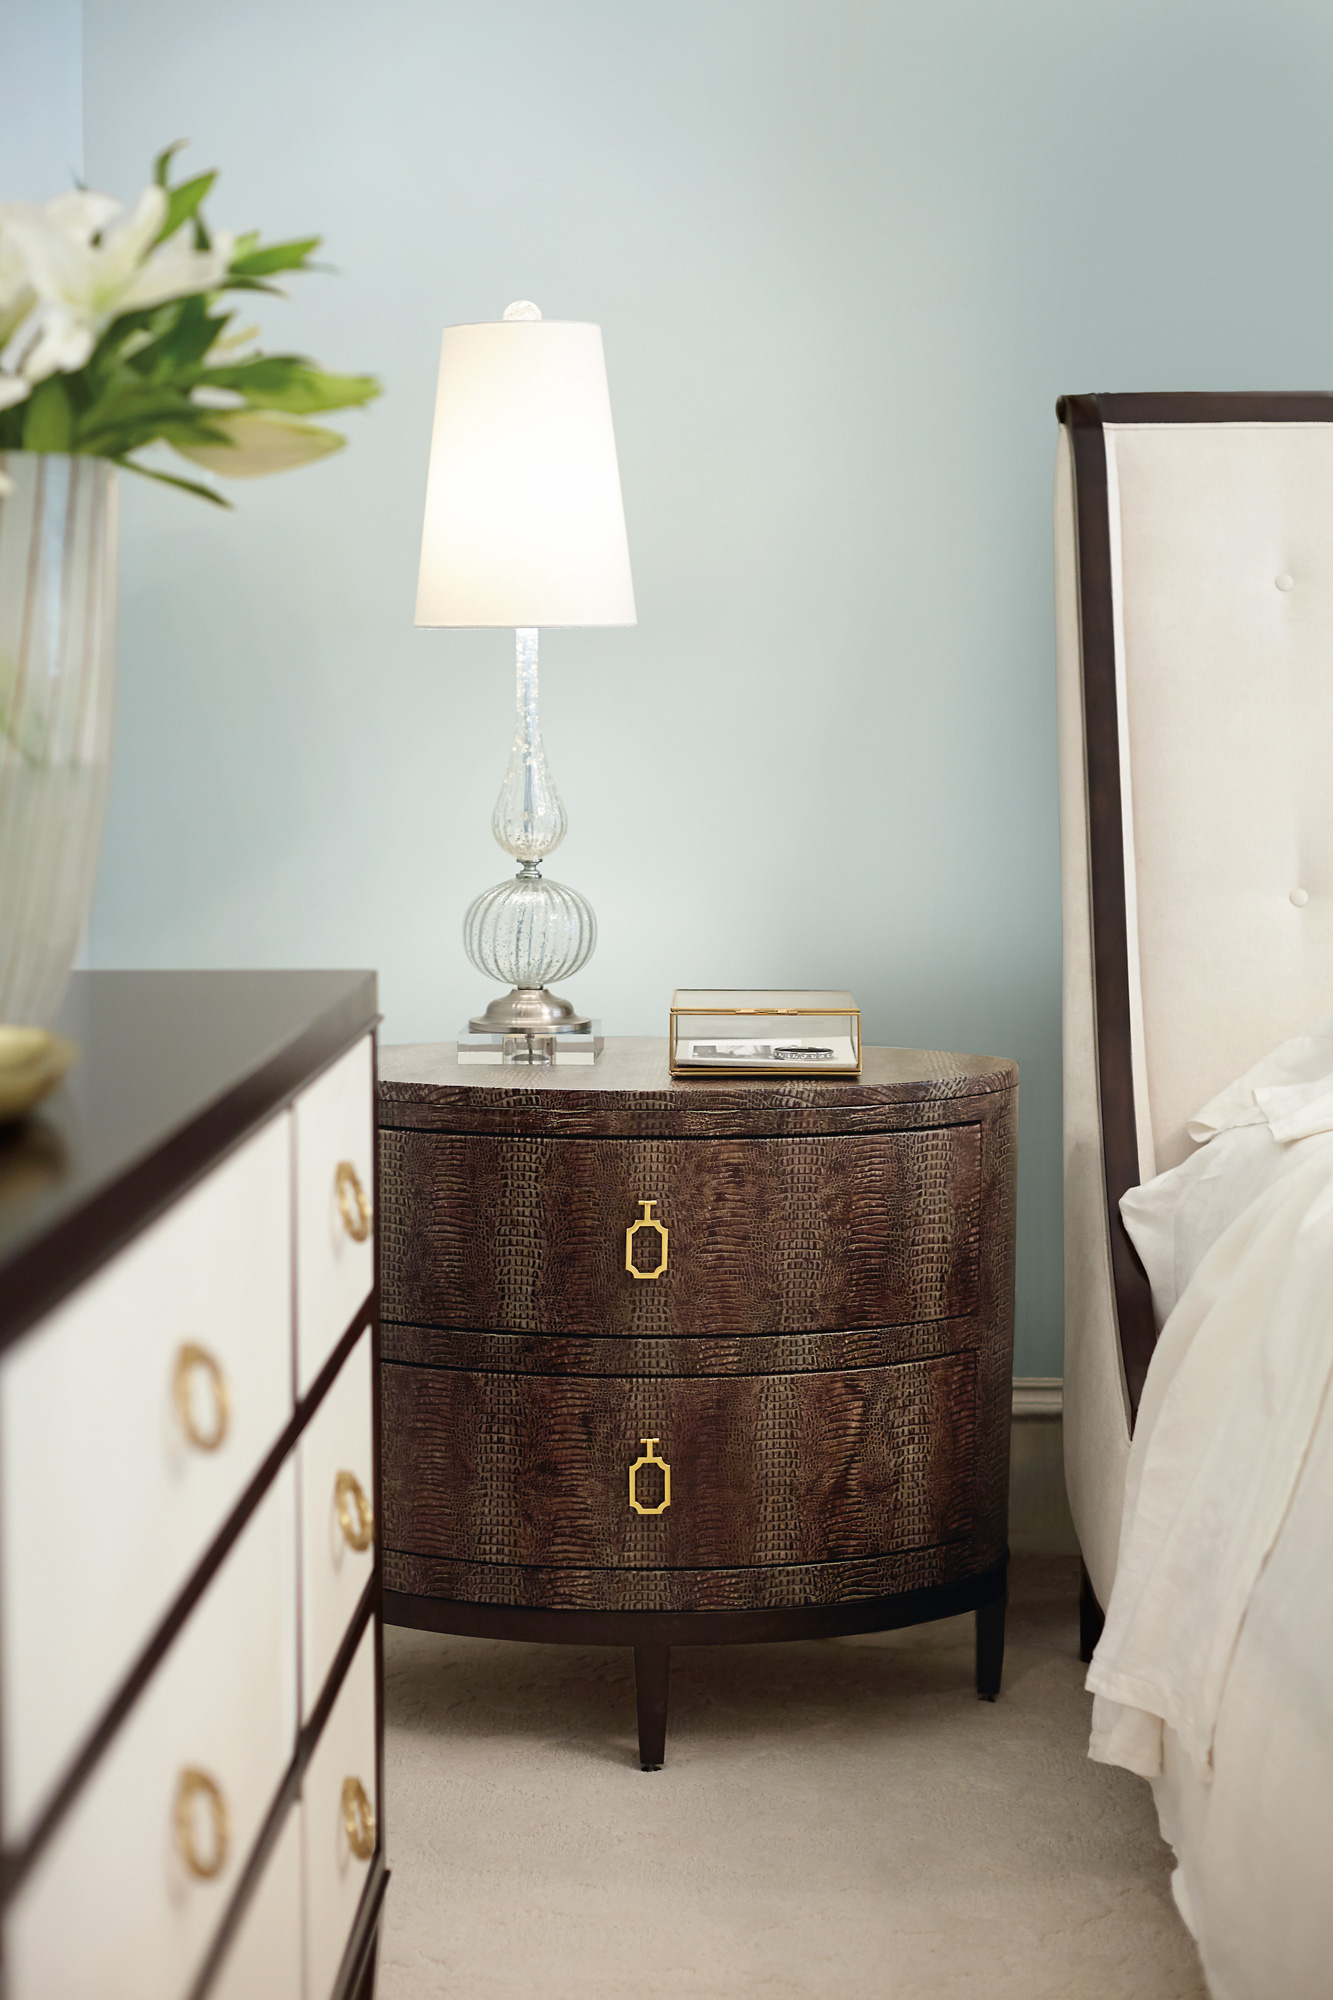 Canadian Furniture Websites Jet Set Upholstered Bed And Oval Nightstand And Dresser